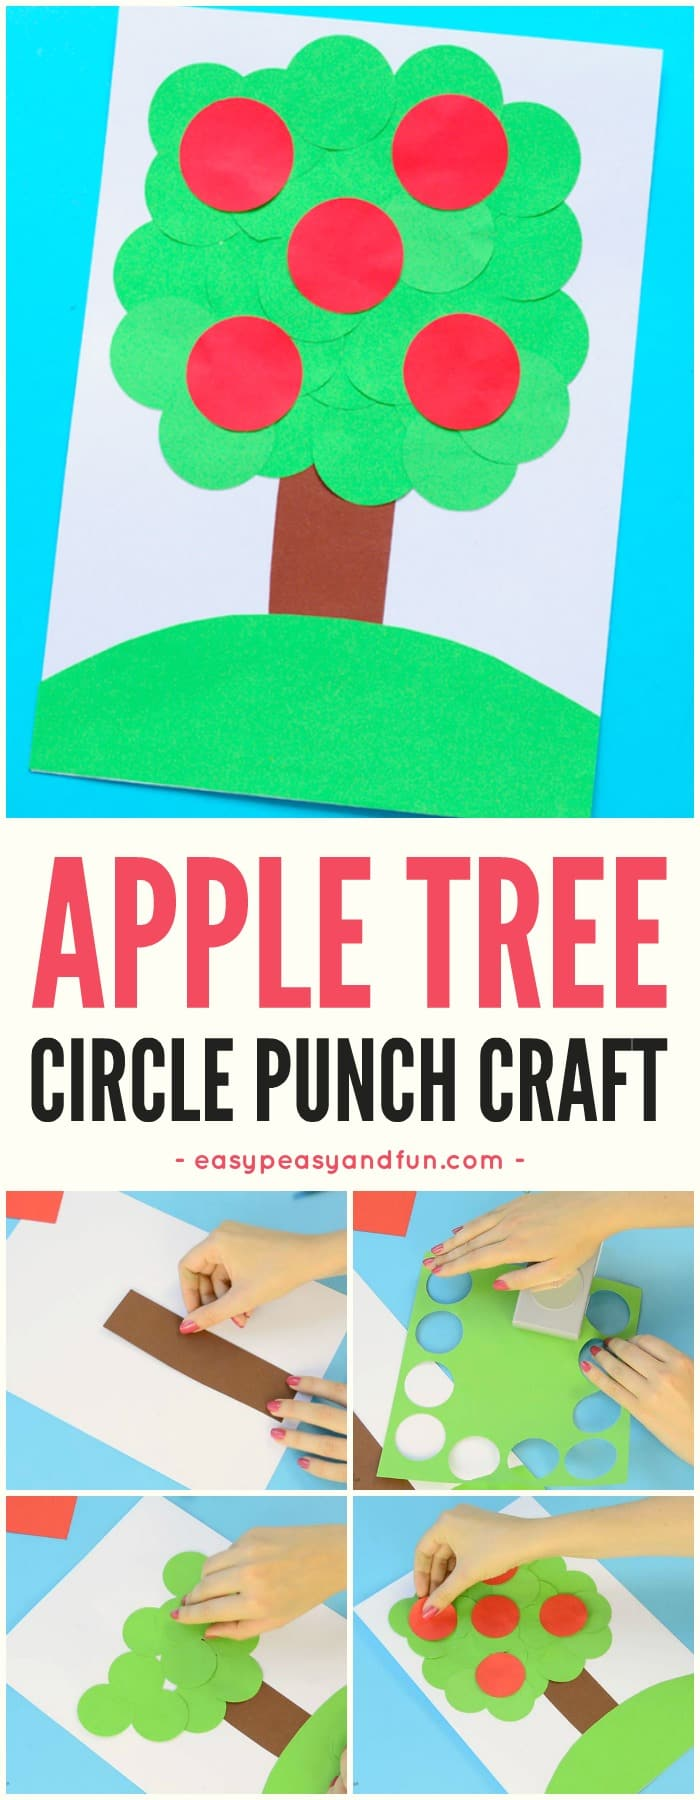 Apple tree circle punch craft paper collages easy peasy and fun simple apple tree circle punch craft for kids jeuxipadfo Choice Image